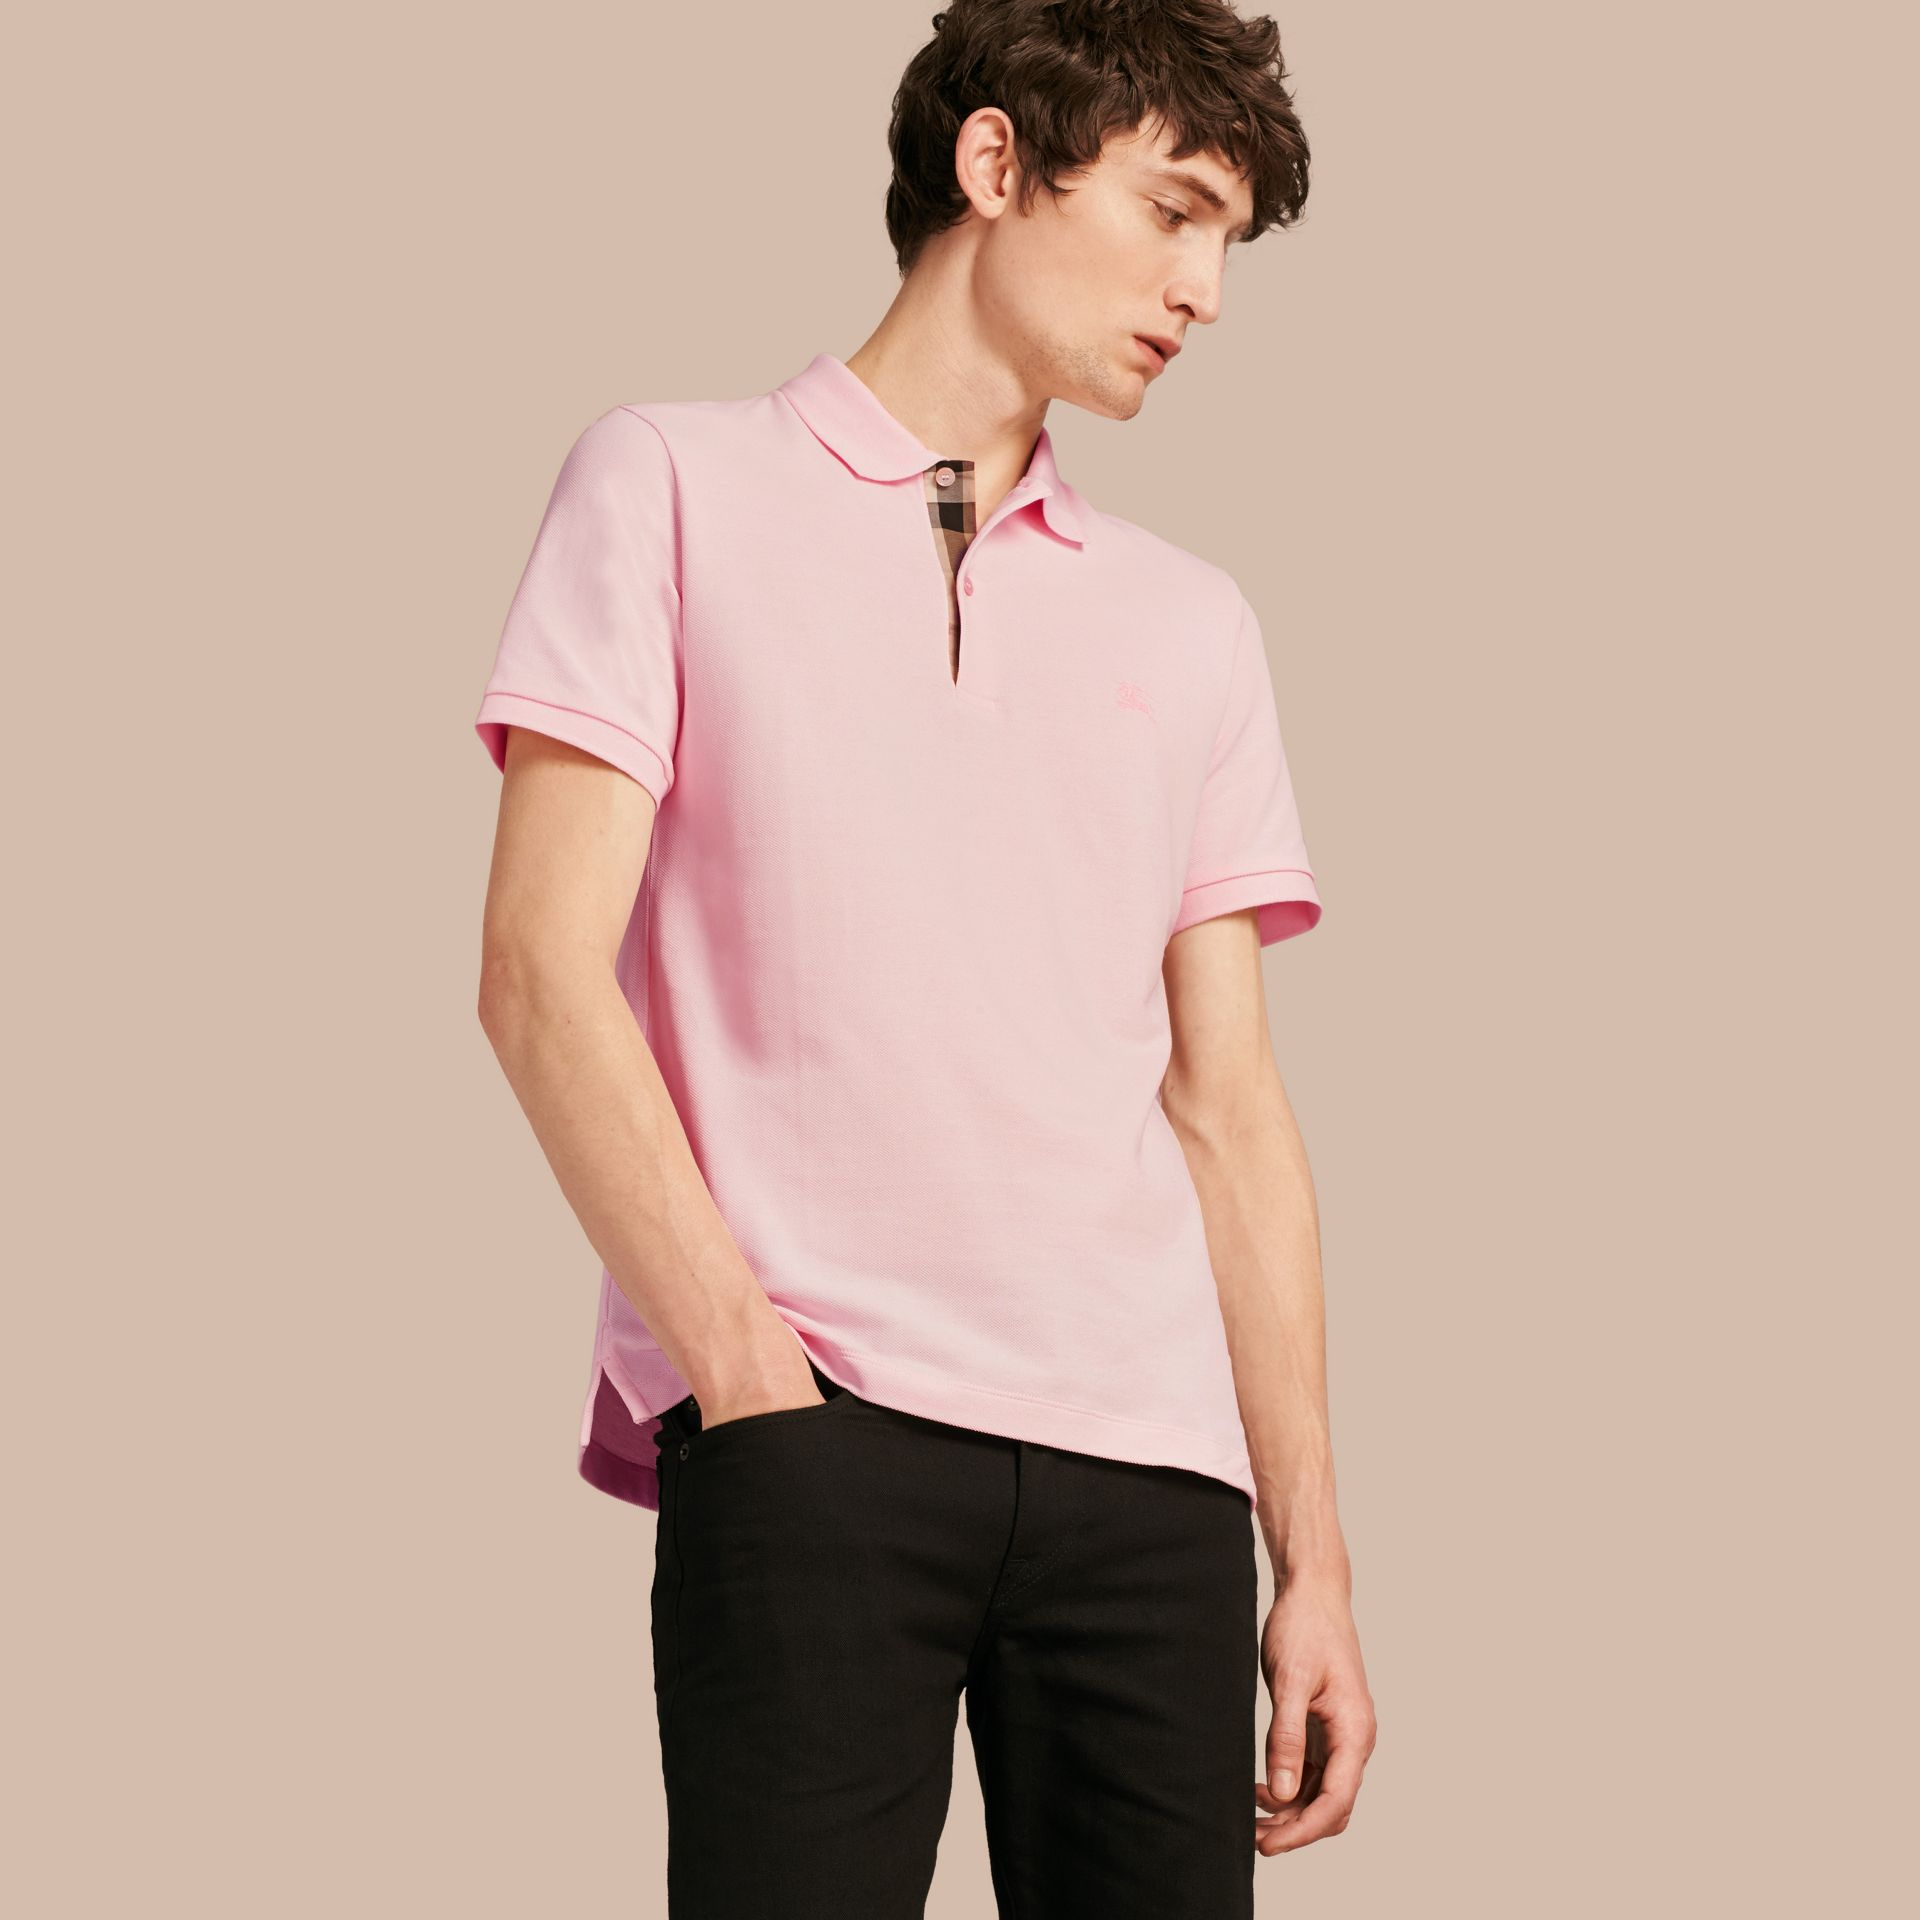 City pink Check Placket Cotton Piqué Polo Shirt City Pink - gallery image 1